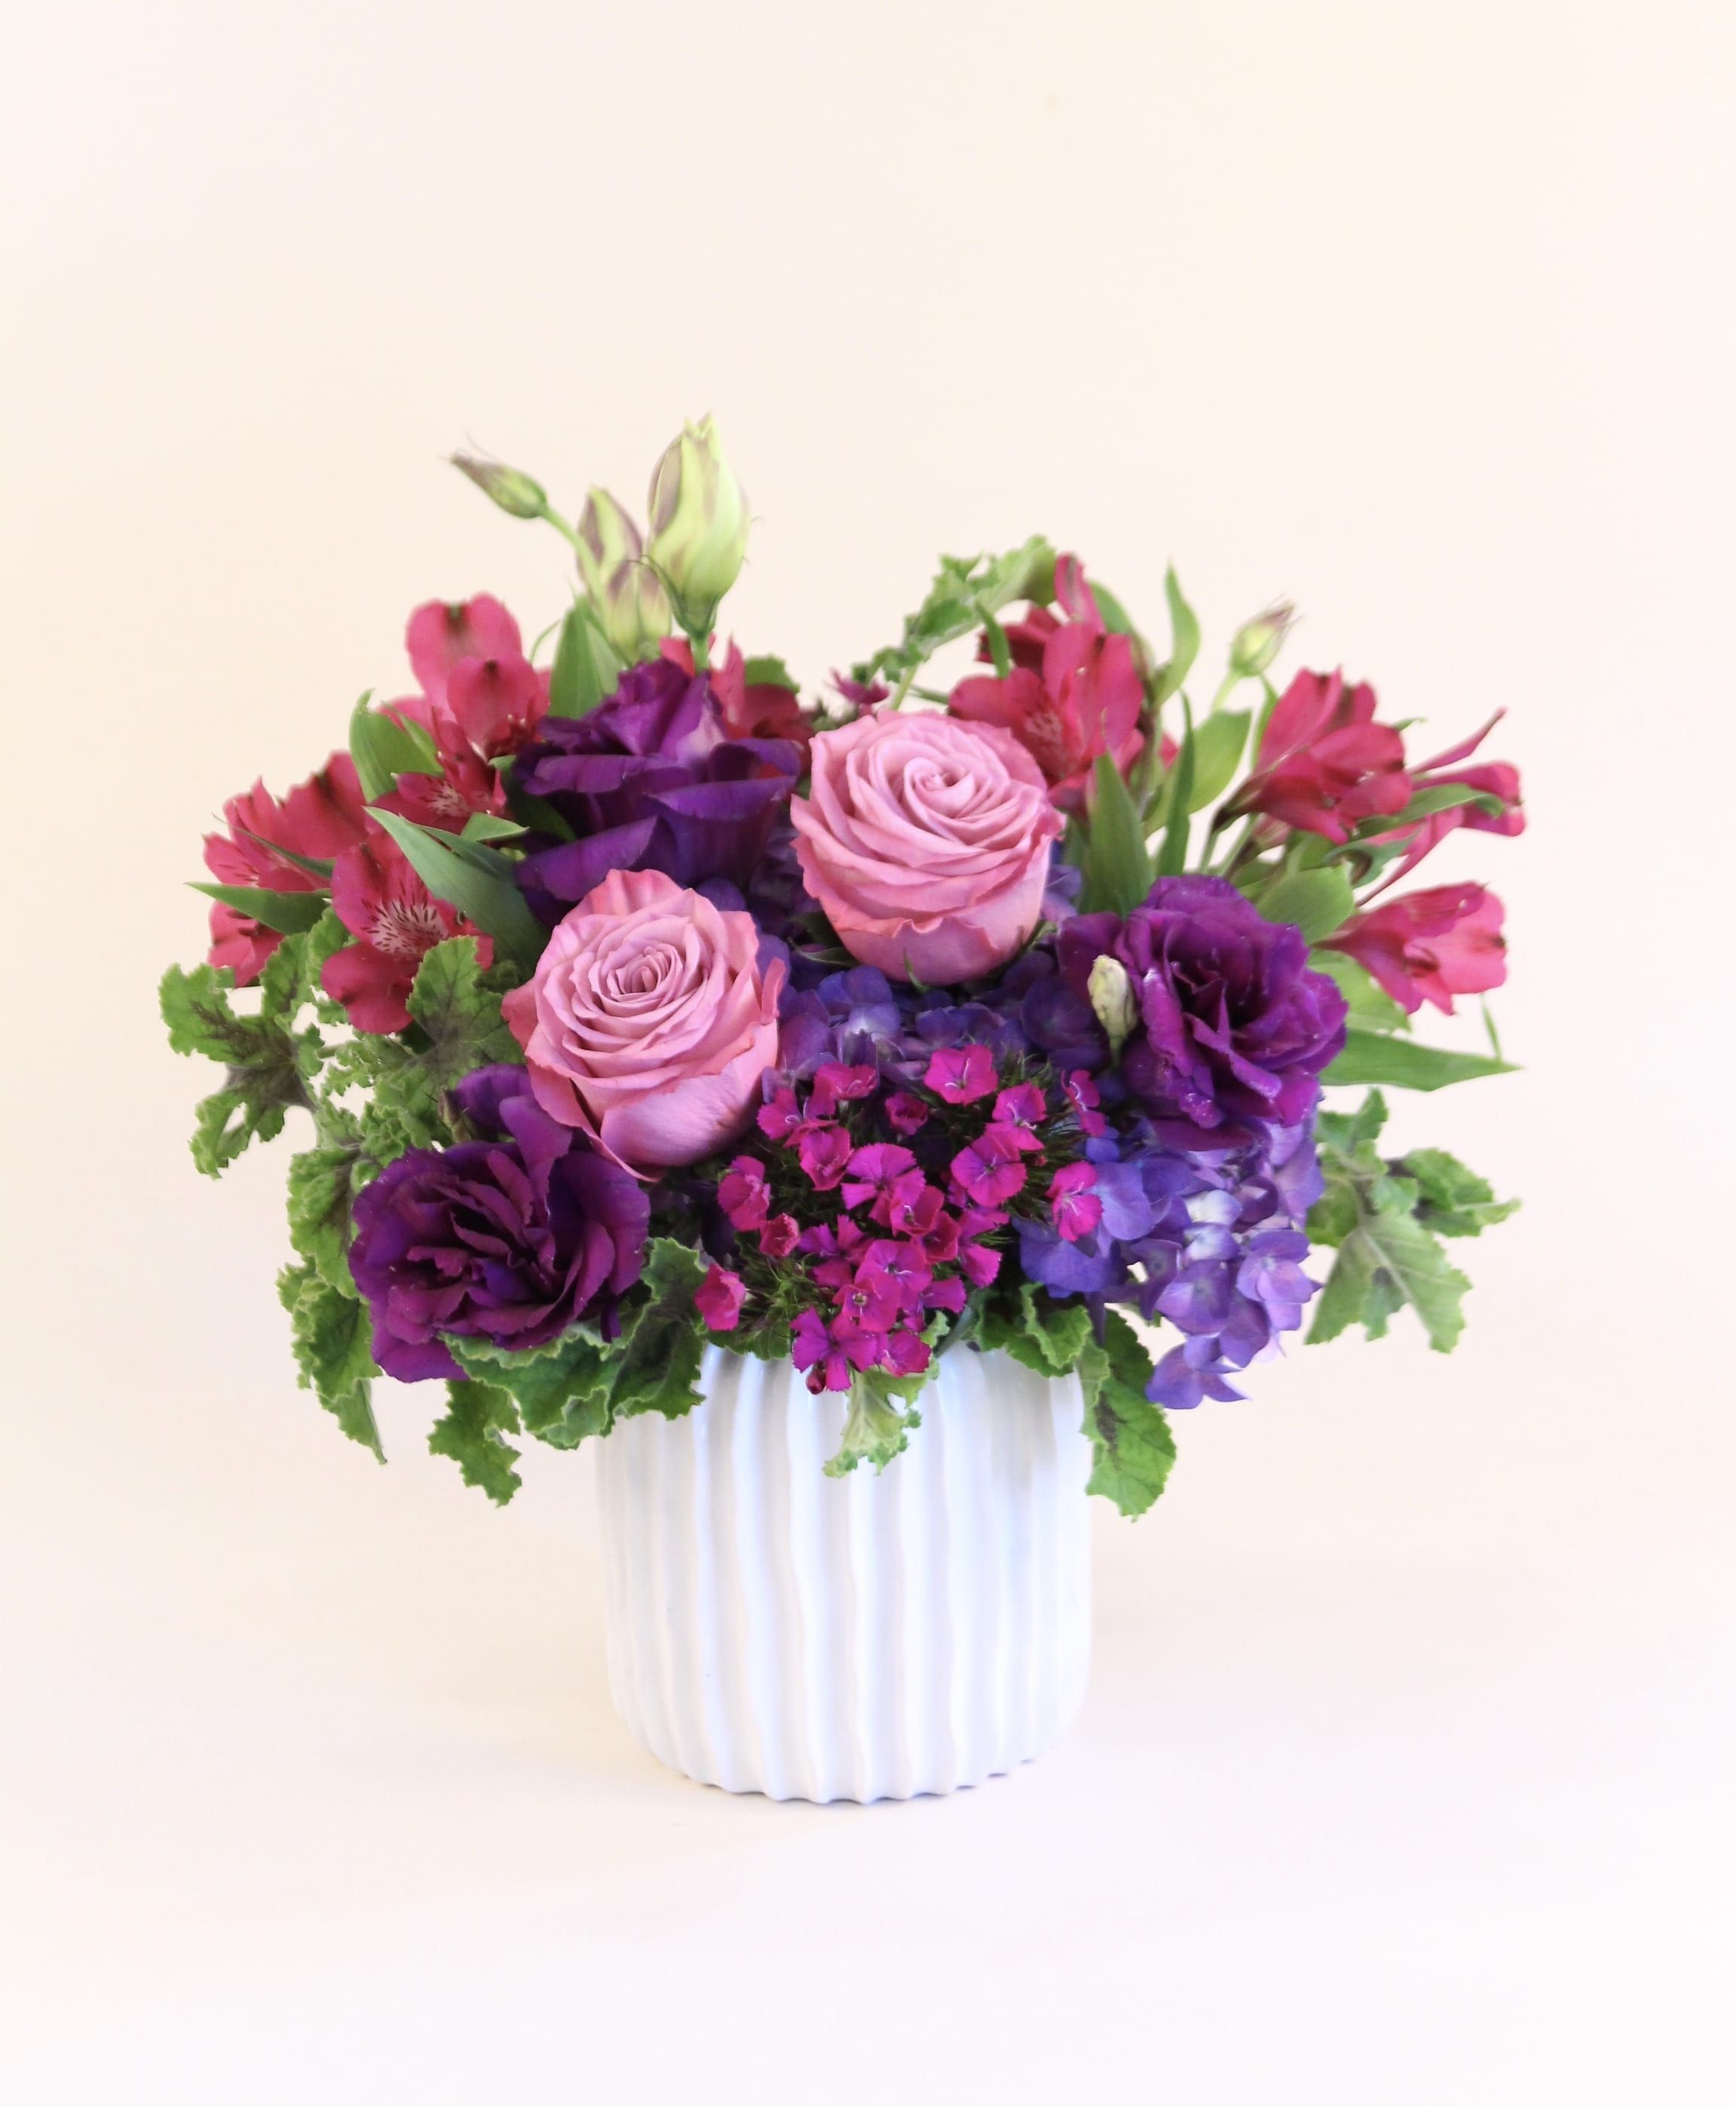 Send Curated Luxury Gift Box flowers in LOS ANGELES, CA